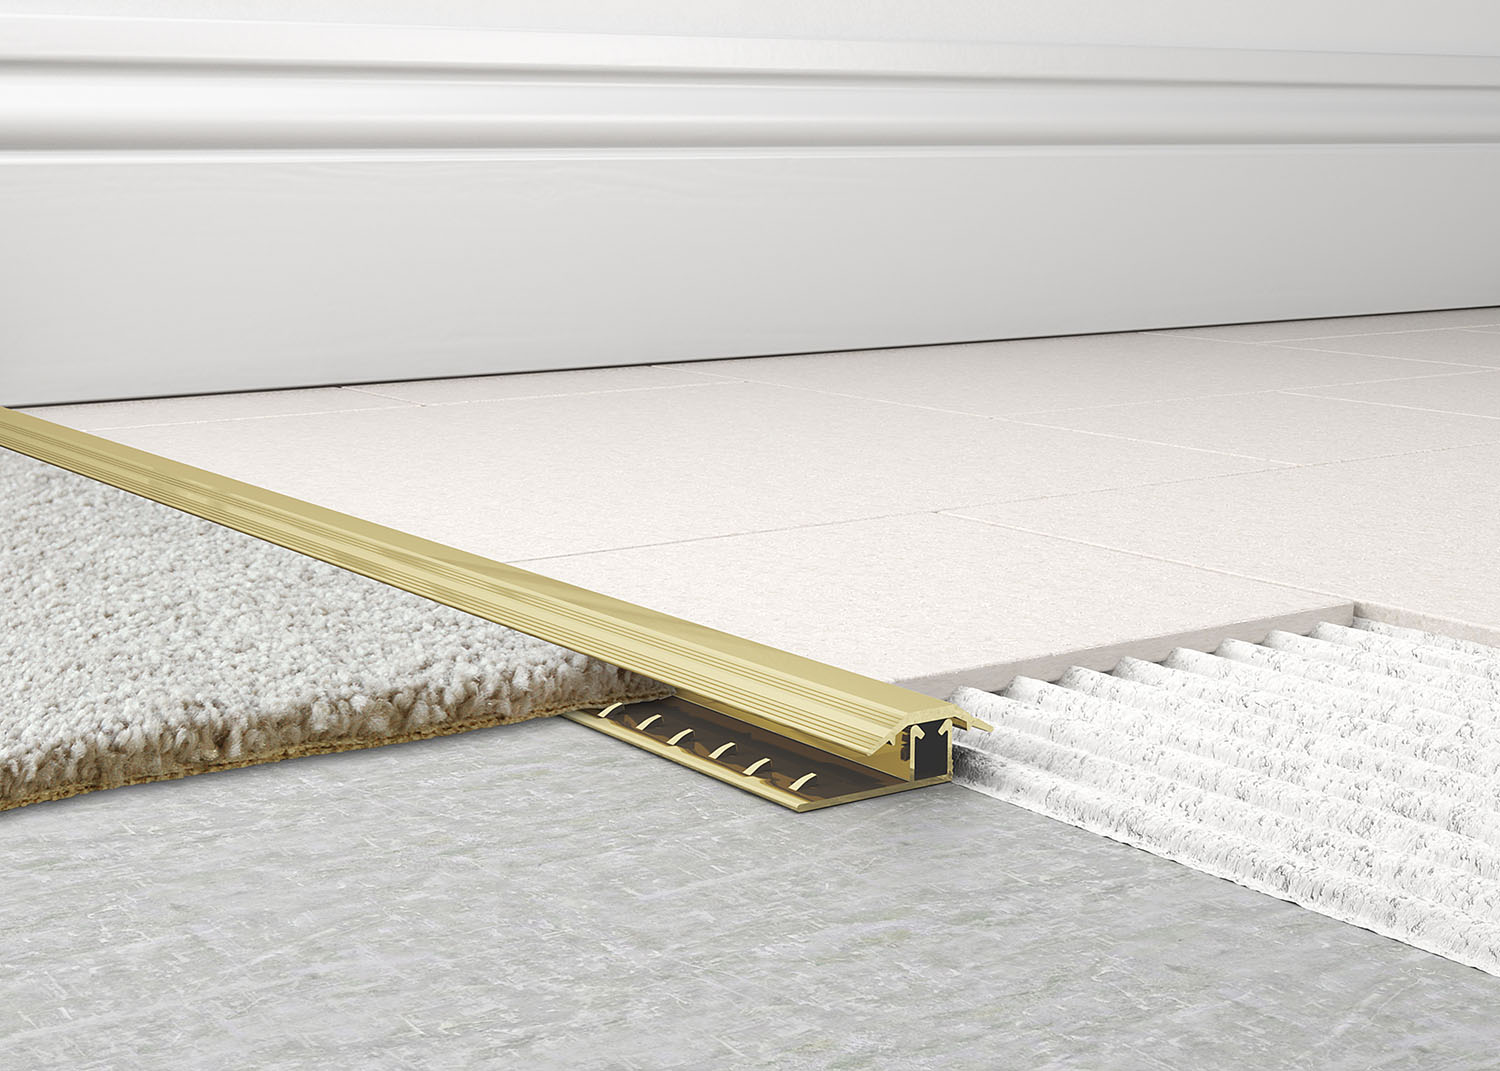 Down Carpet To Tile Trim Has Been Designed Give A Neat Transition Between Most